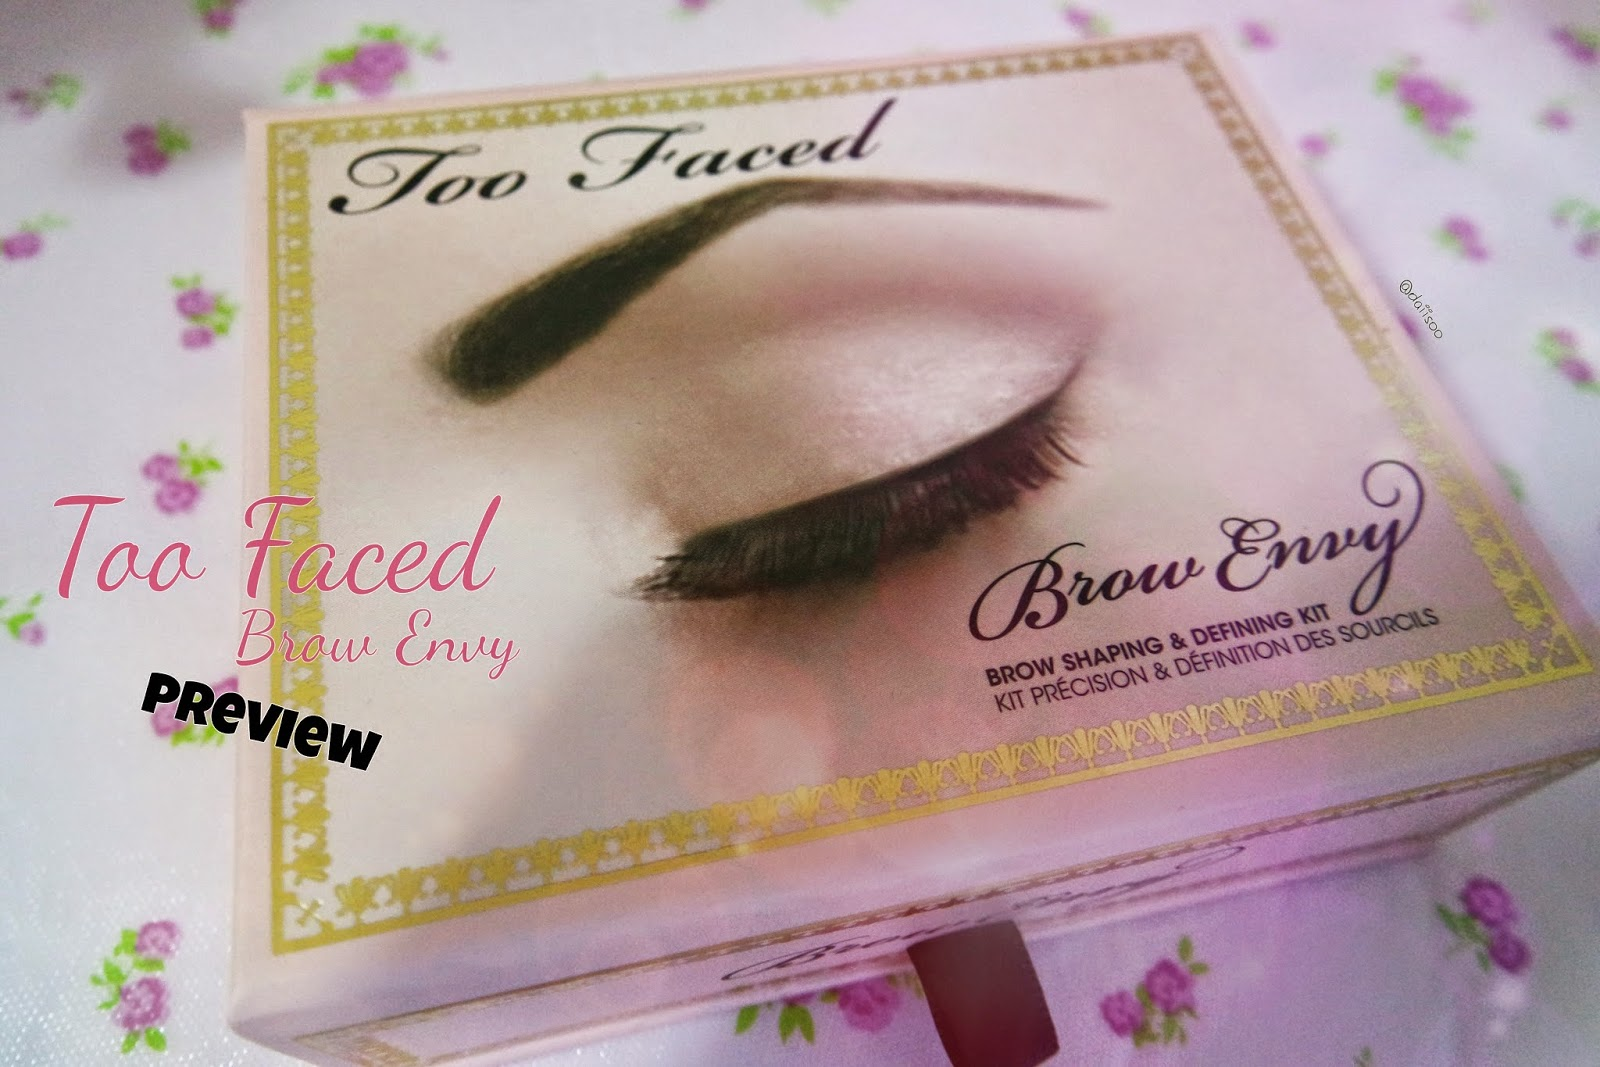 Daiisoo Too Faced Brow Envy Kit Preview